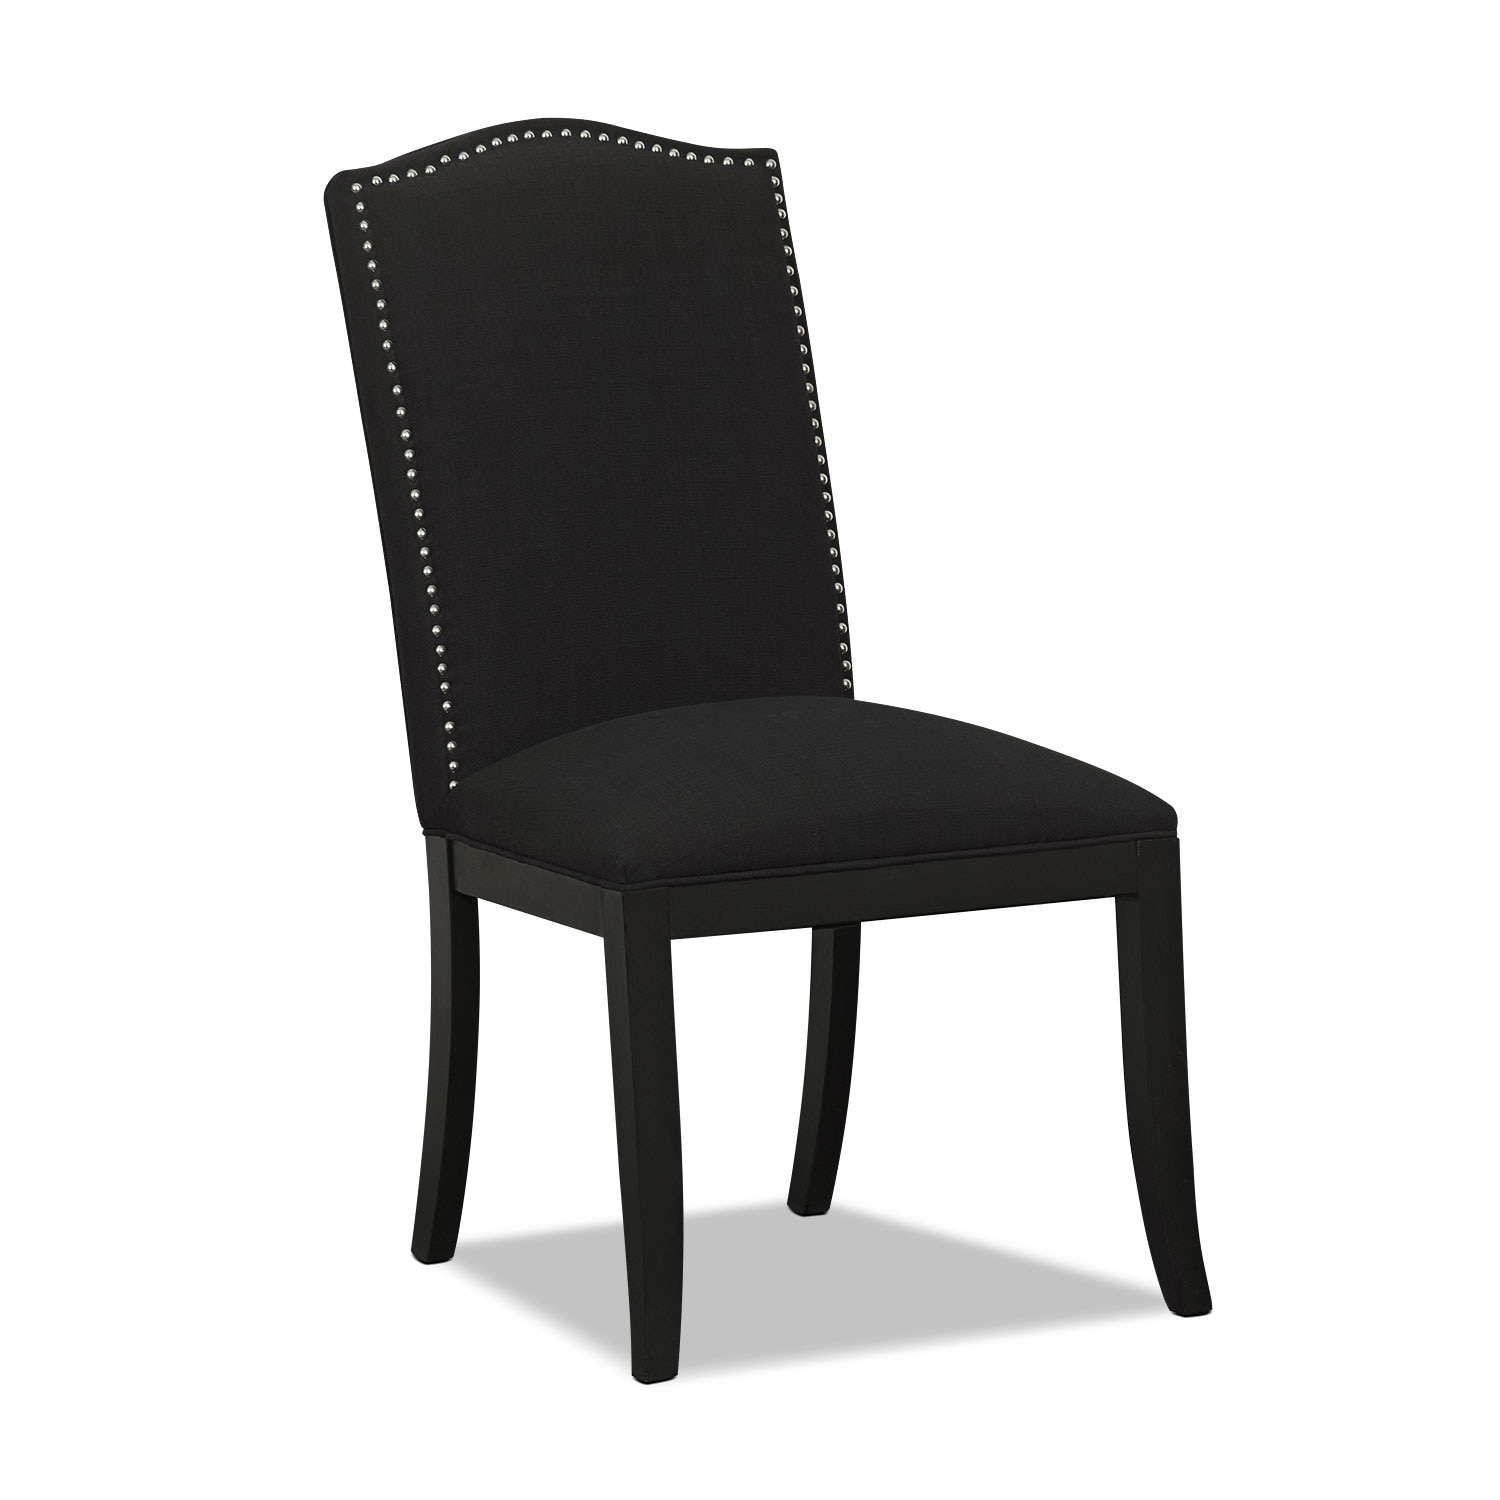 Accent and Occasional Furniture - Morris Accent Chair - Black